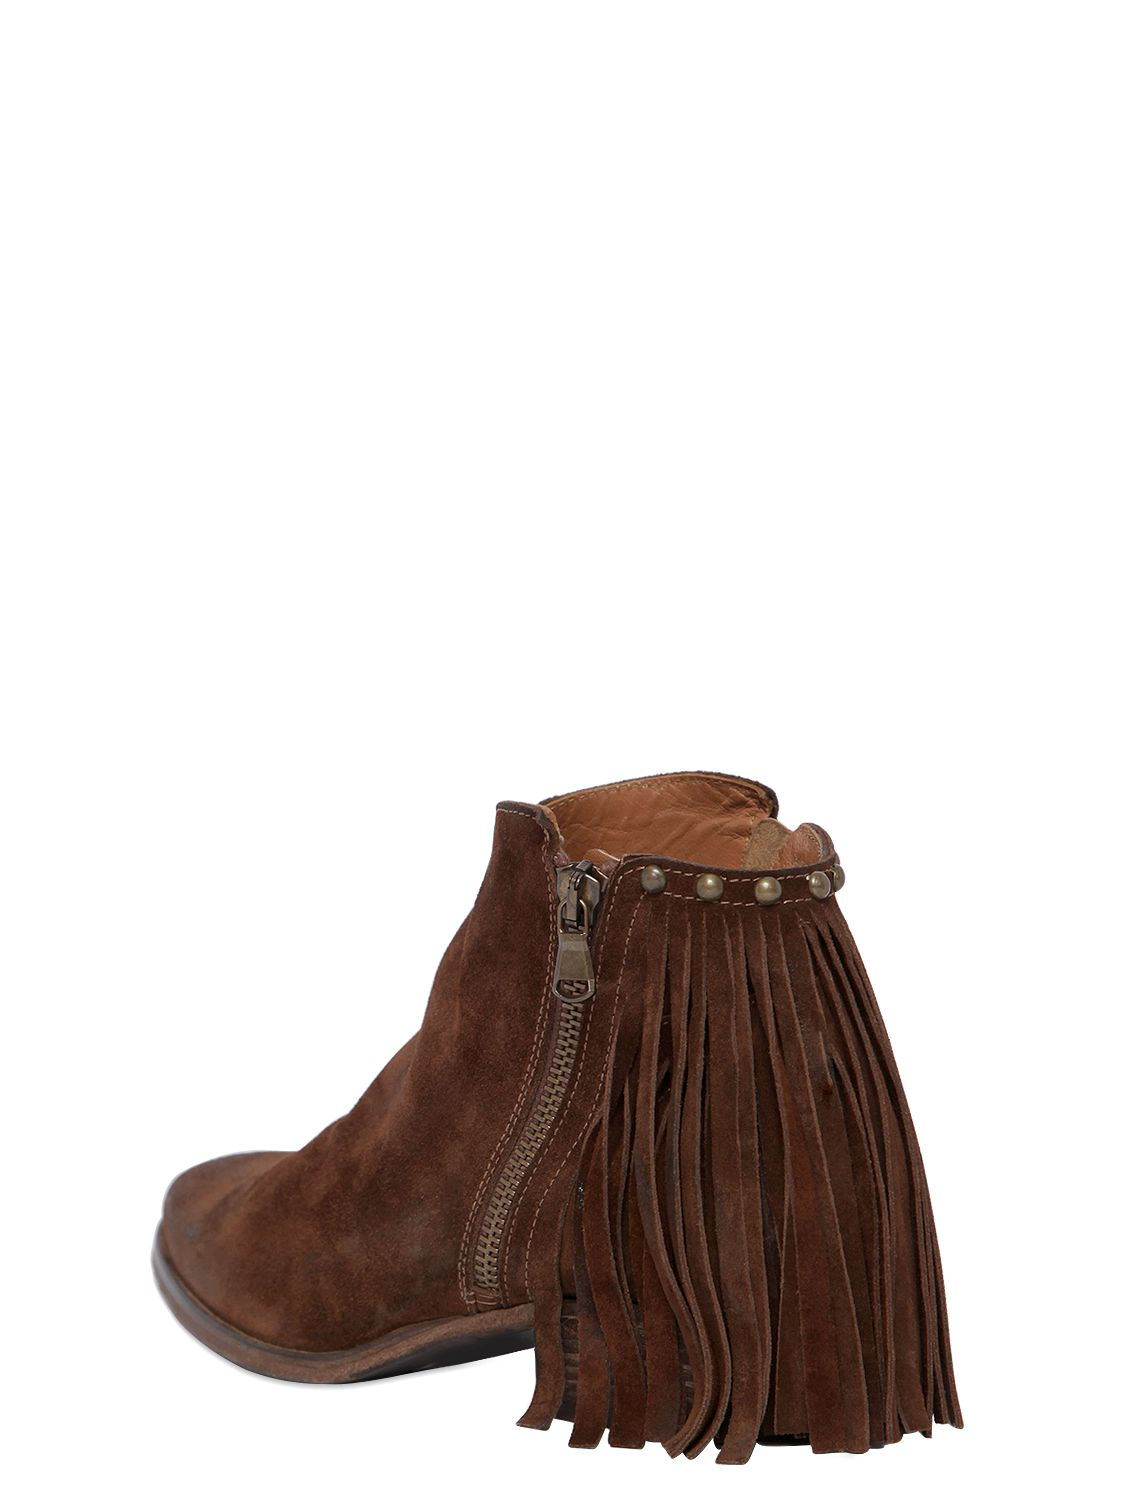 Strategia 50mm Zip-up Fringed Suede Ankle Boots in Brown